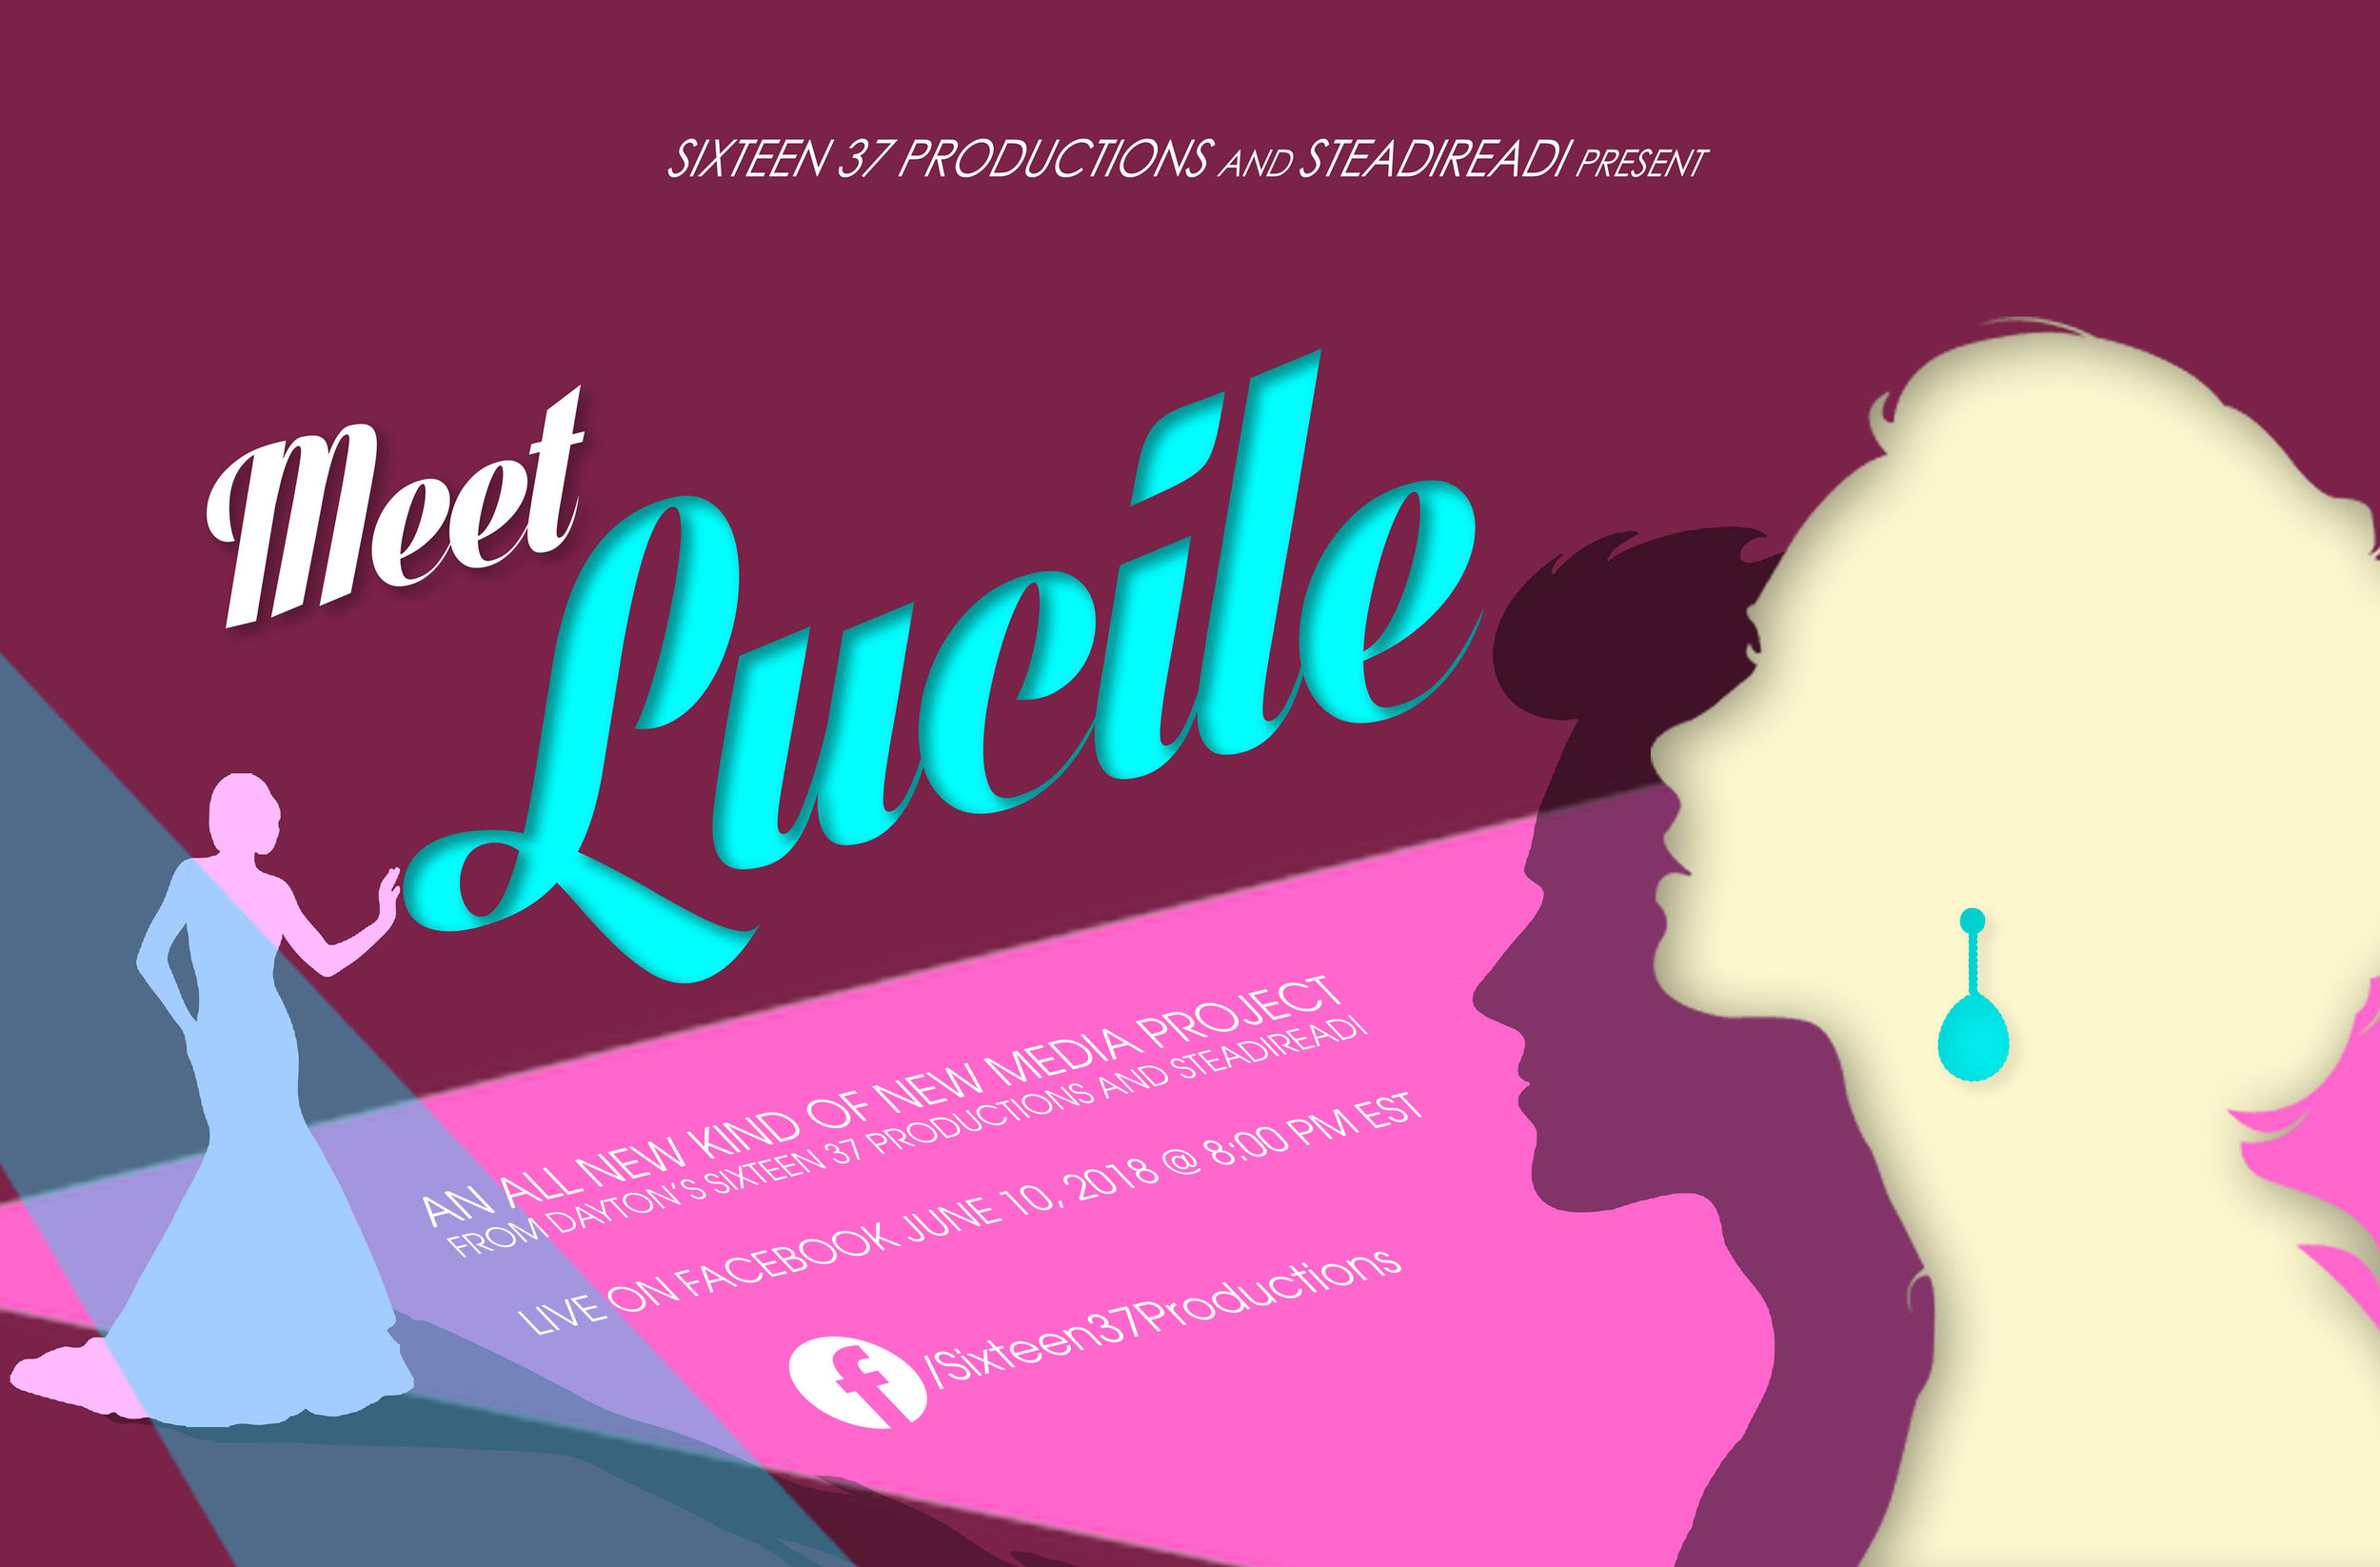 Meet Lucile promotional flyer.jpg